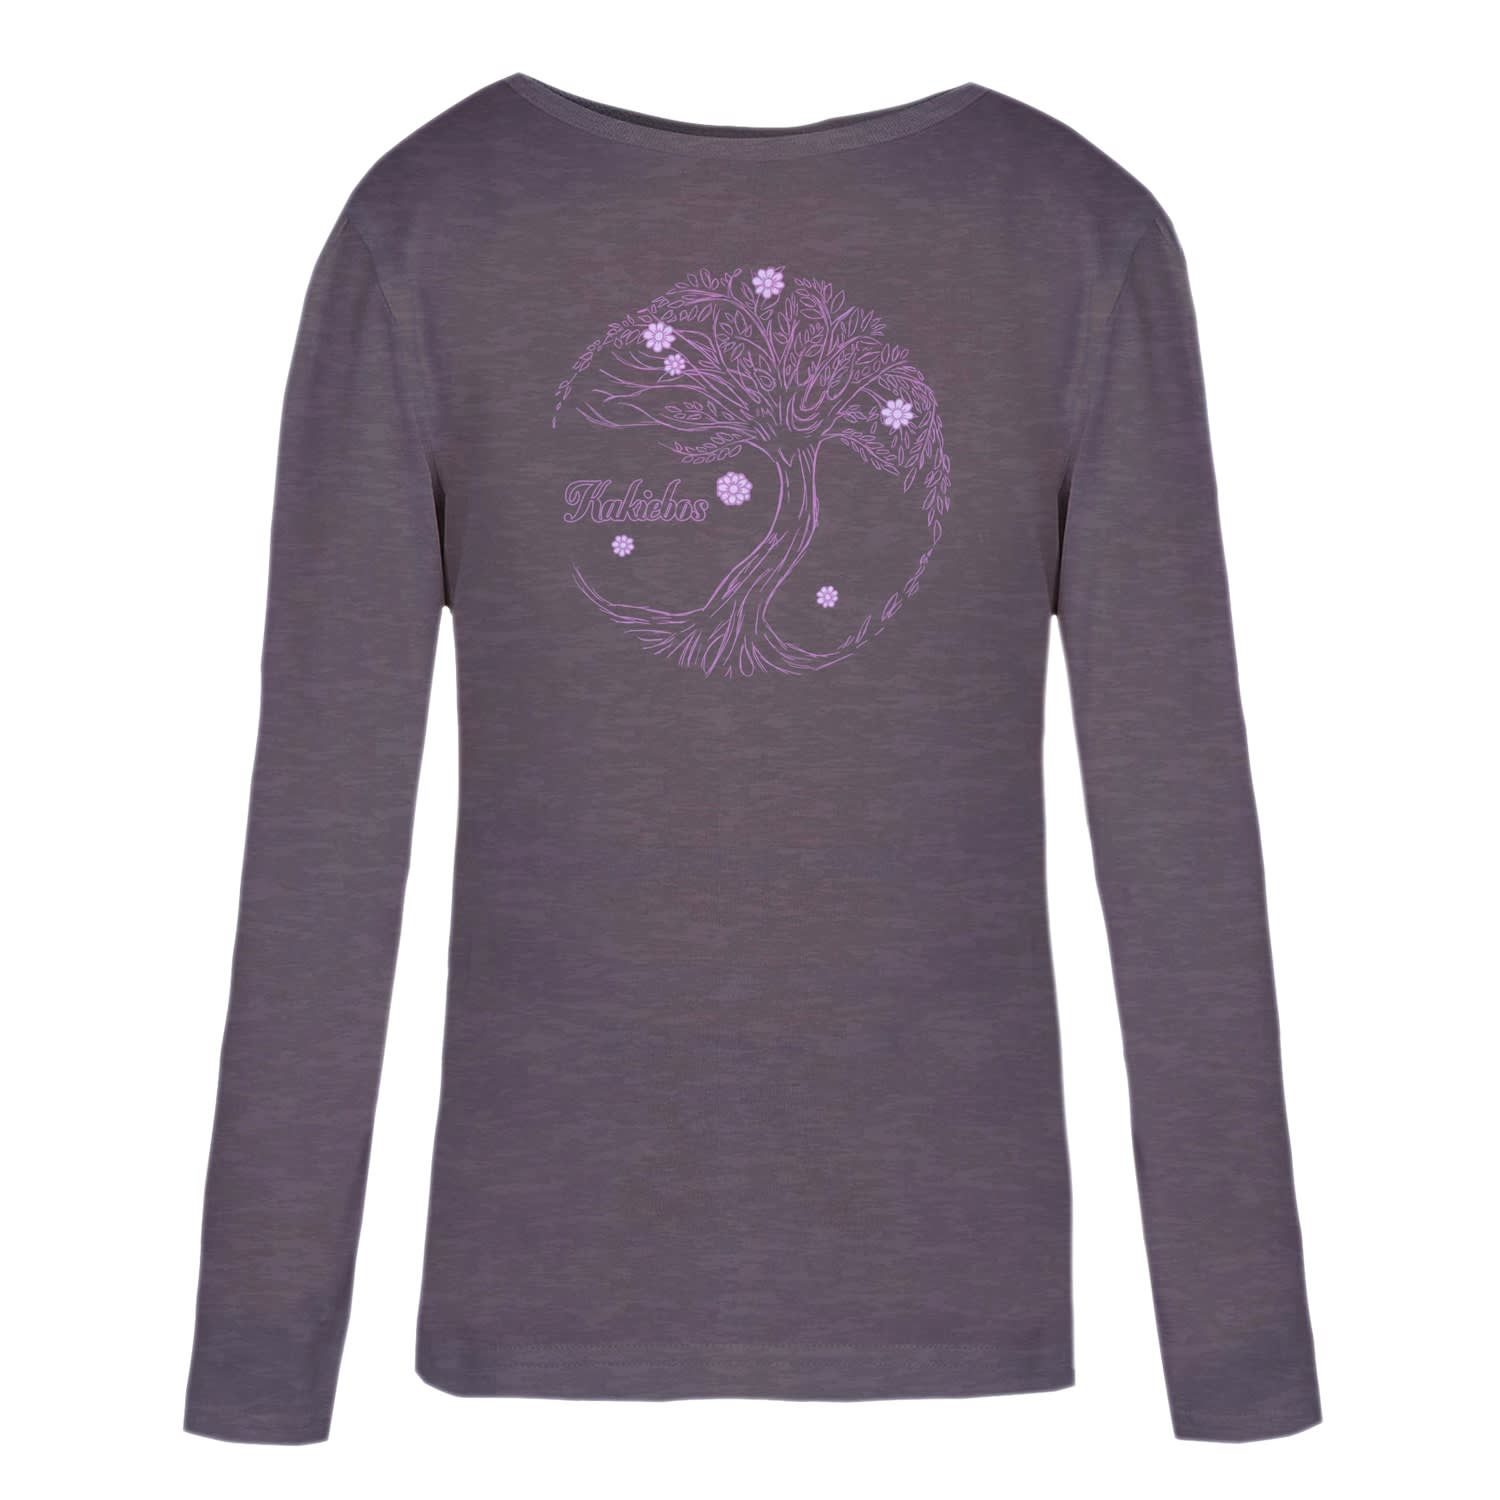 Kakiebos Women's Wilgerboom Long Sleeve Tee